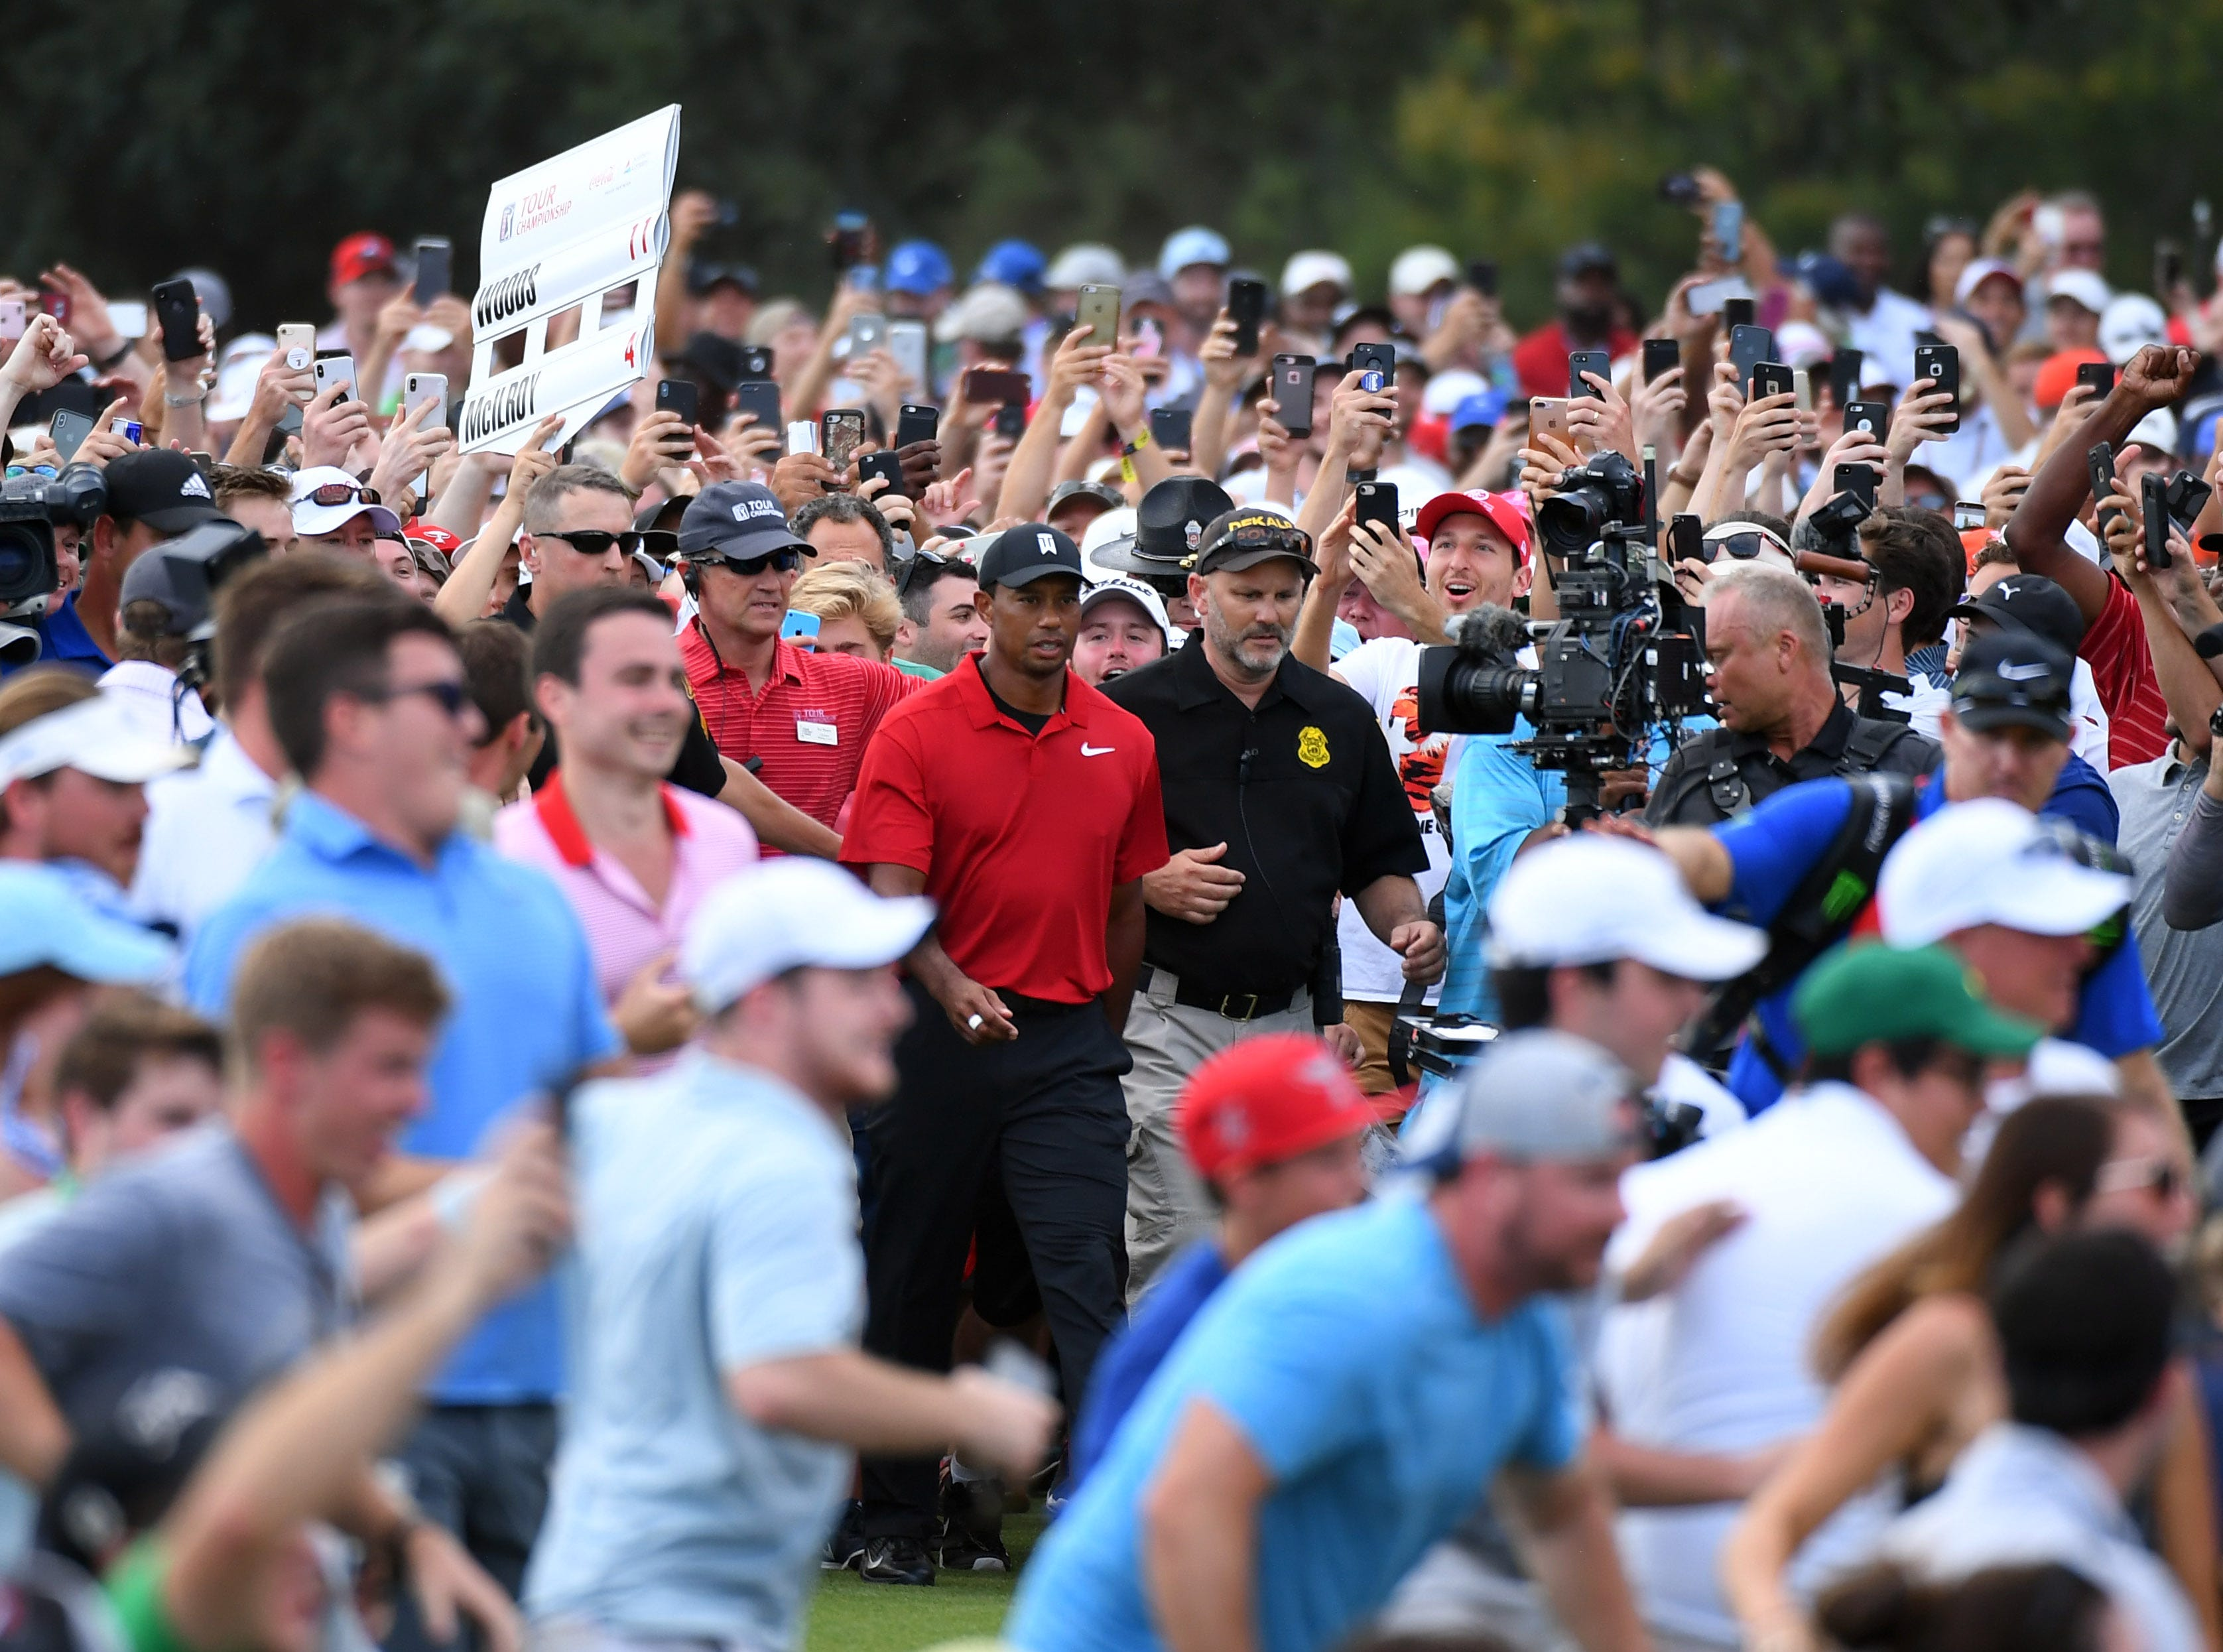 The crowd follows Tiger Woods down the 18th green during the final round of the Tour Championship golf tournament at East Lake Golf Club on Sep 23, 2018 in Atlanta, Ga.  Tiger Woods won the Tour Championship by two shots for his first victory in five years.